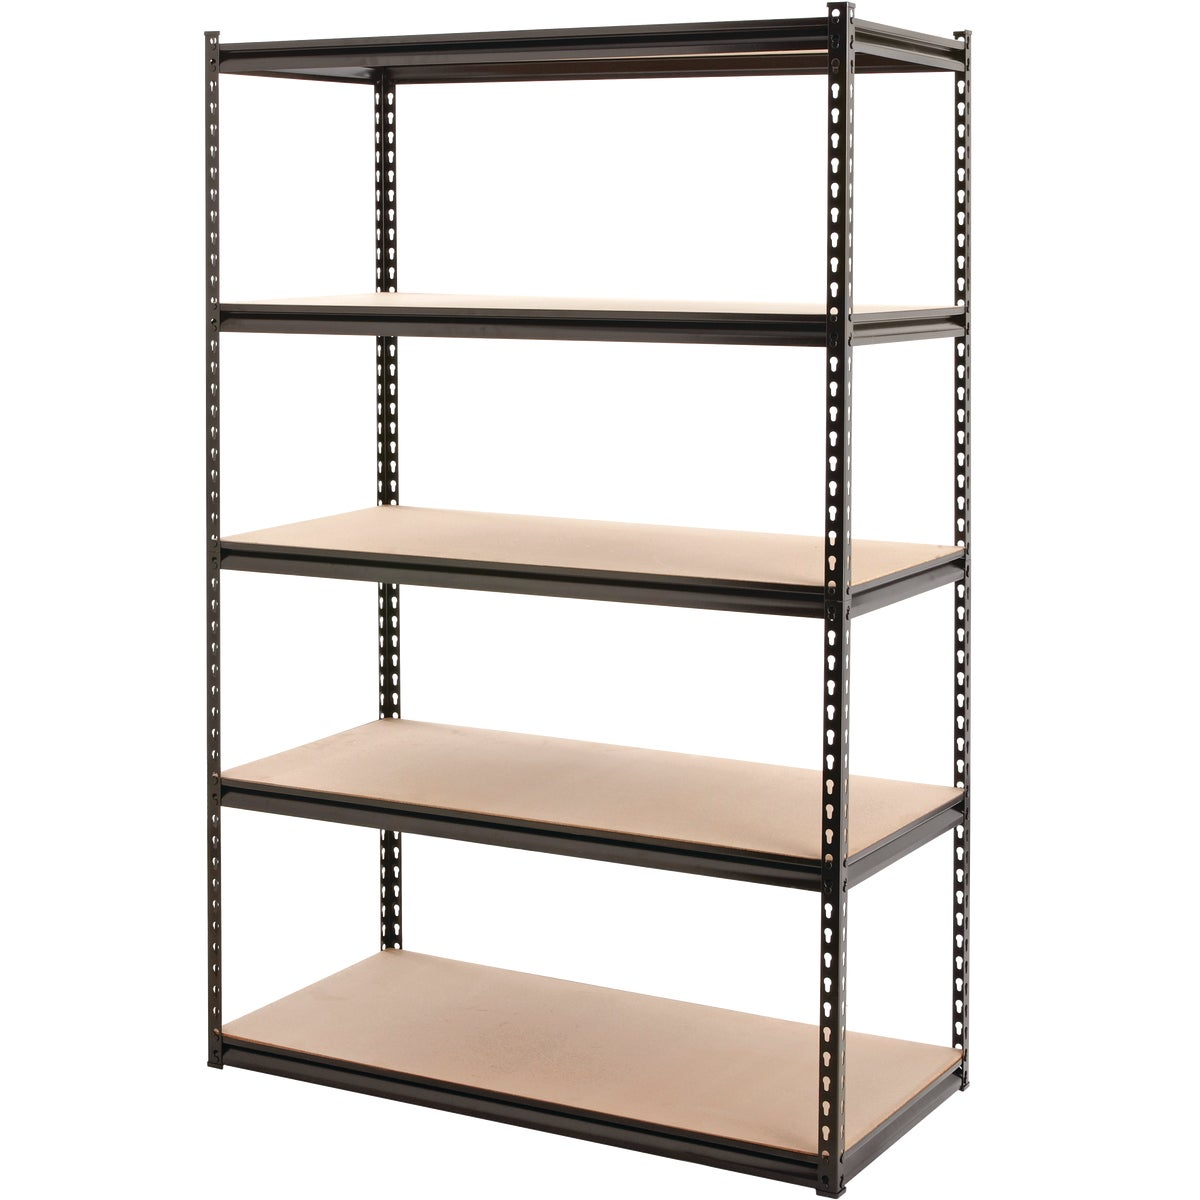 48X24X72 METAL SHELVING - 482472 by Do it Best Global Sourcing